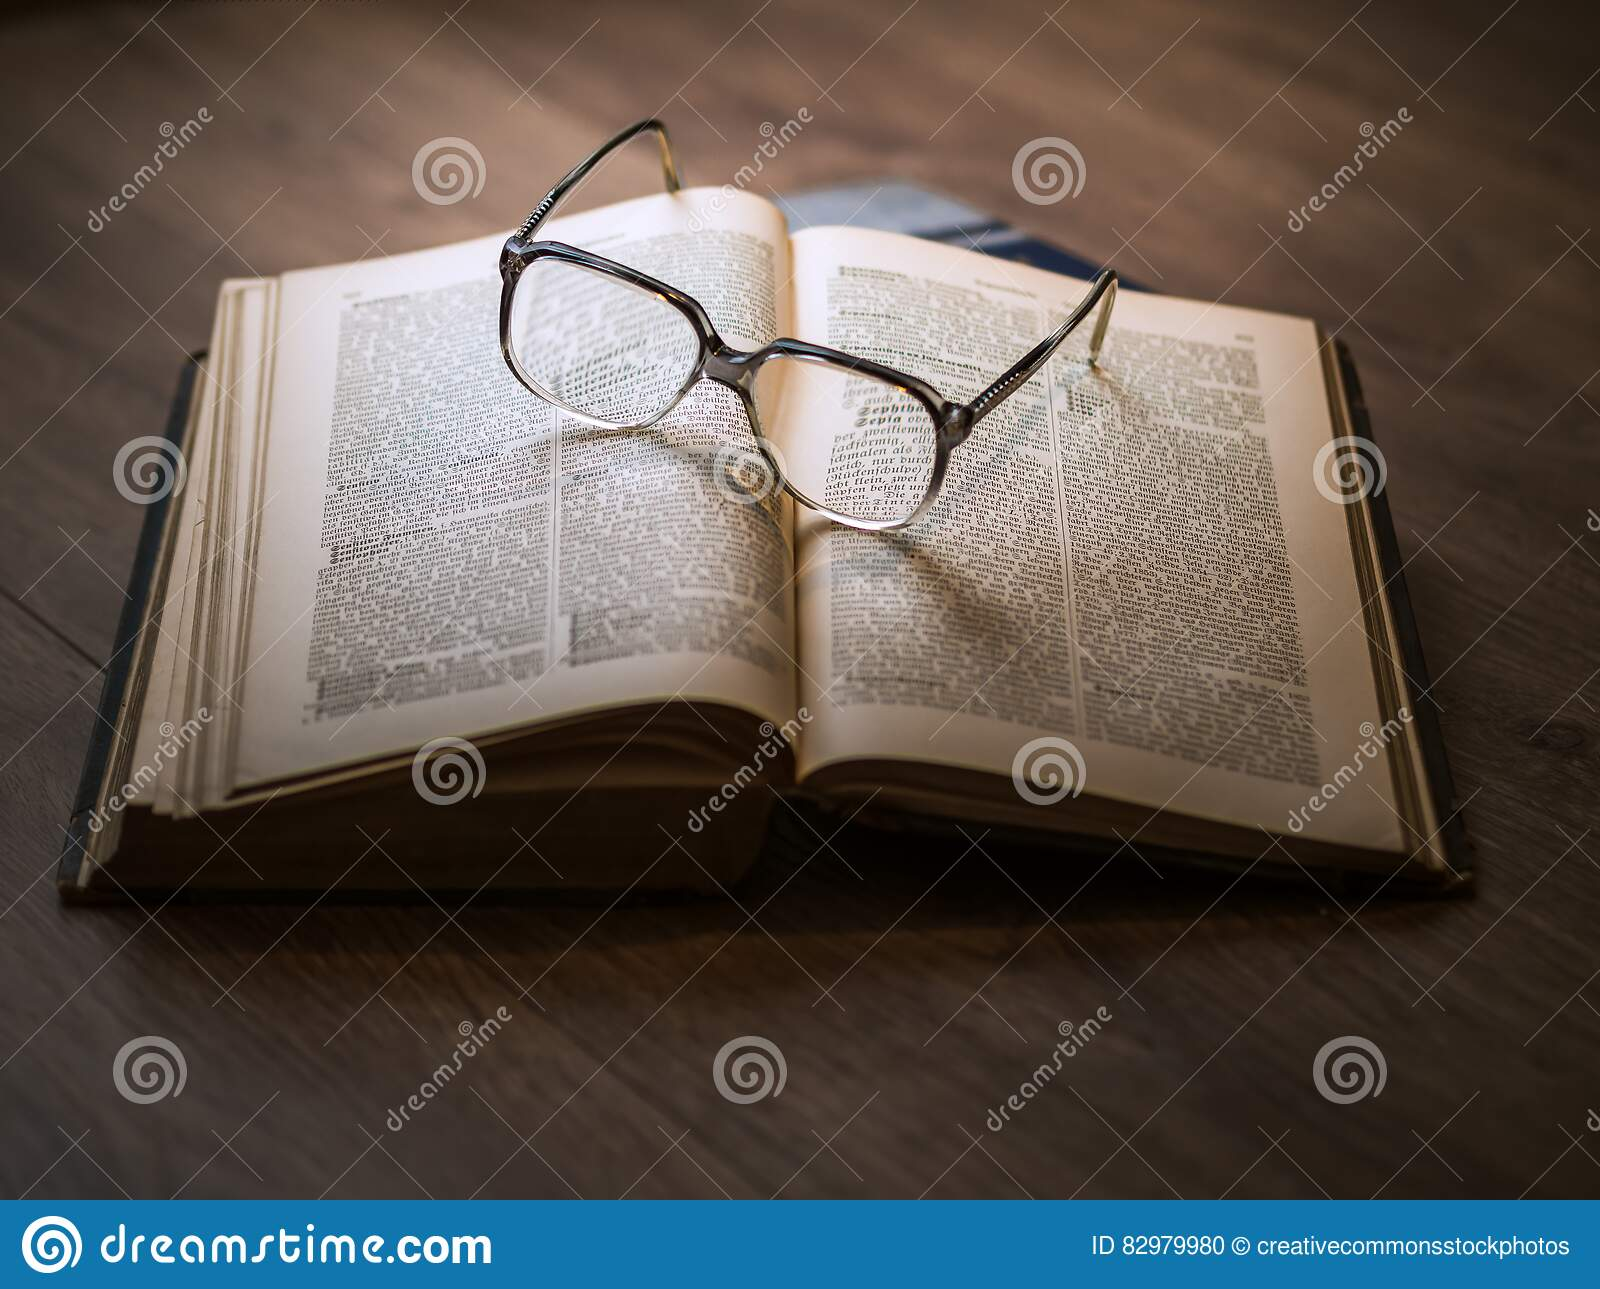 Eyeglasses On Book Picture. Image: 82979980